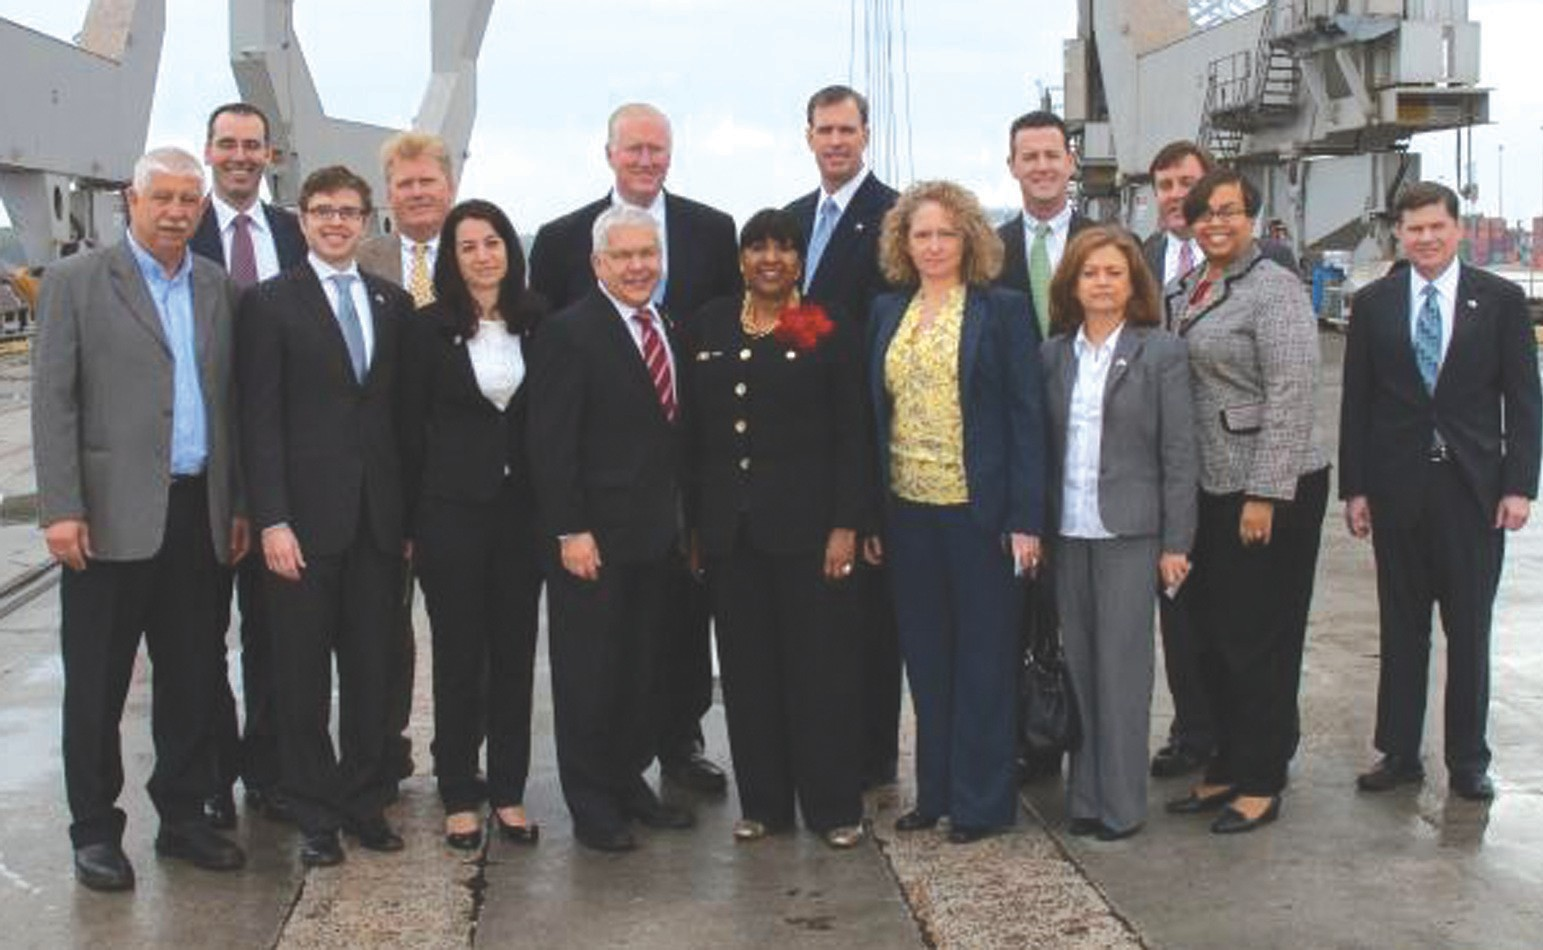 Business and civic leaders from the City of Savannah and Israel at a meeting at the Georgia Ports Authority.